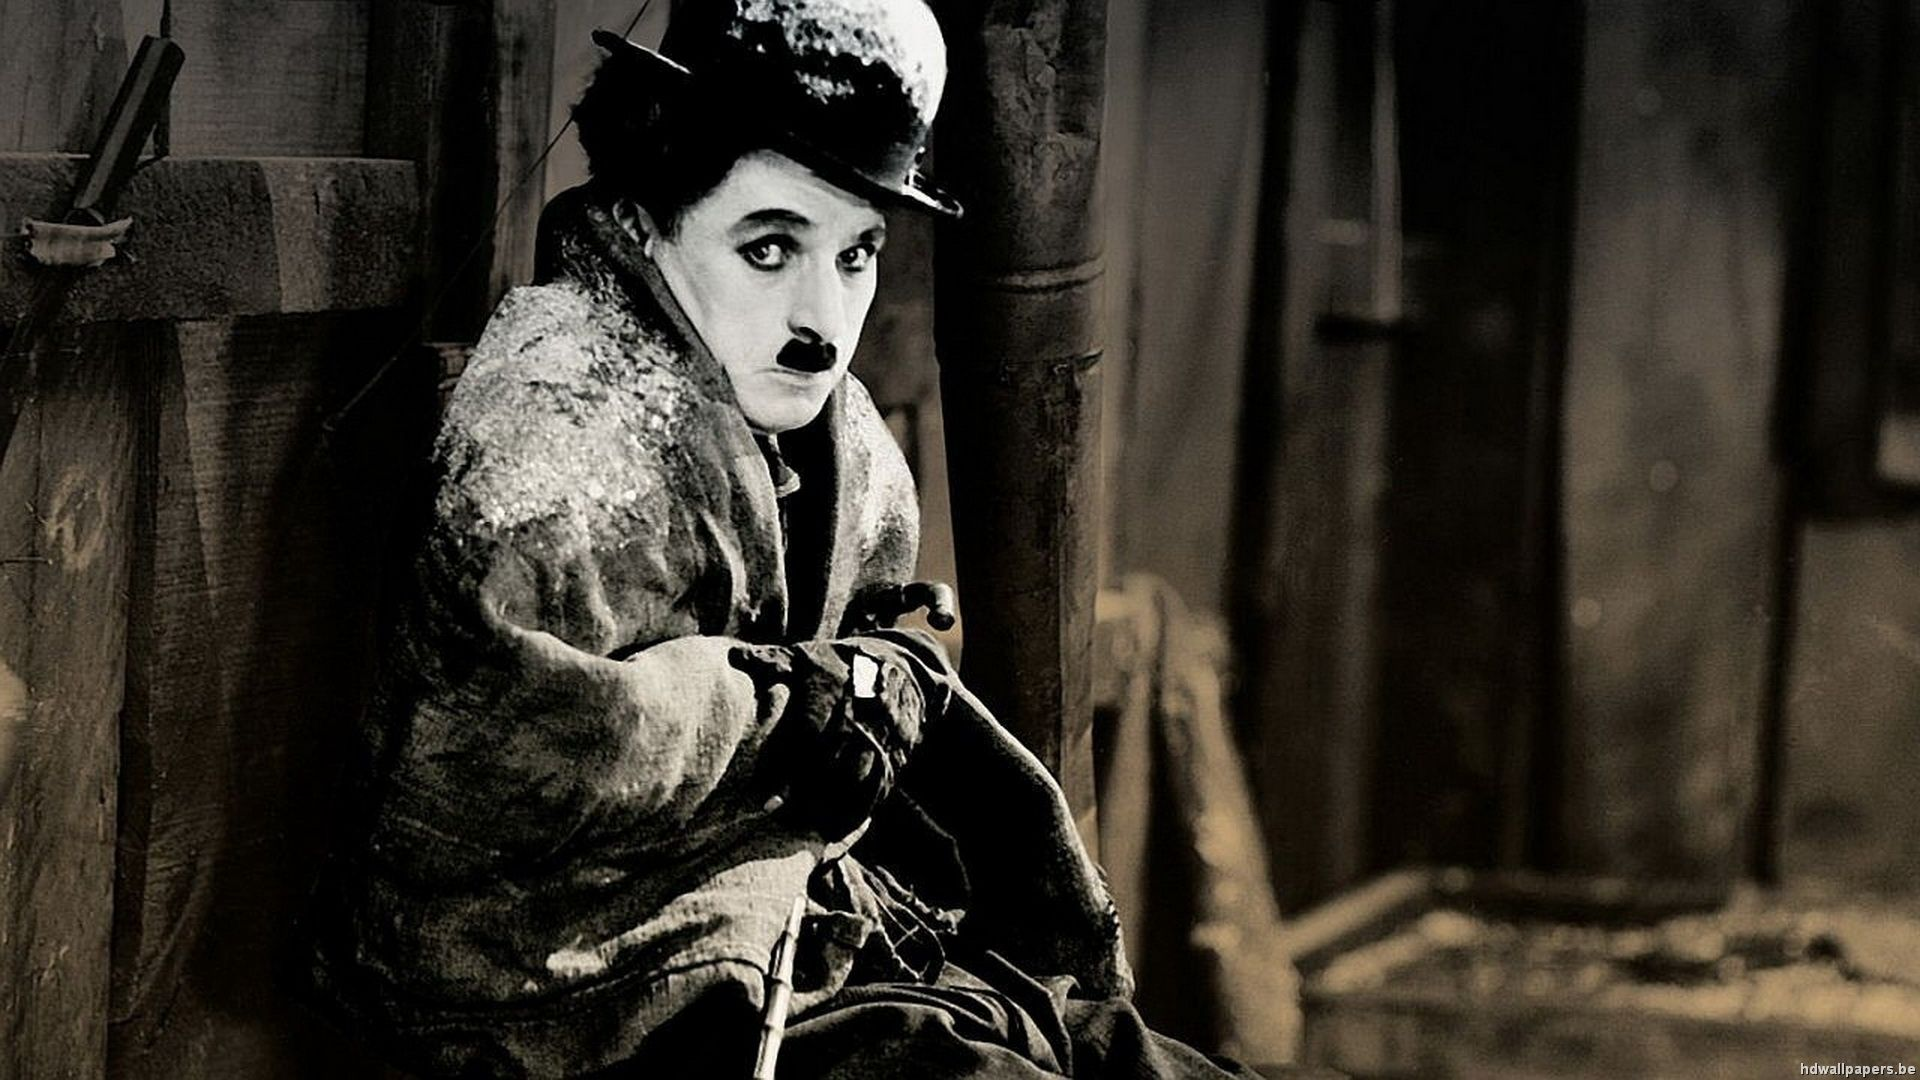 Charlie chaplin wallpapers charlie chaplin wallpaper 5 1920x1080 charlie chaplin wallpapers charlie chaplin wallpaper 5 1920x1080 thecheapjerseys Images